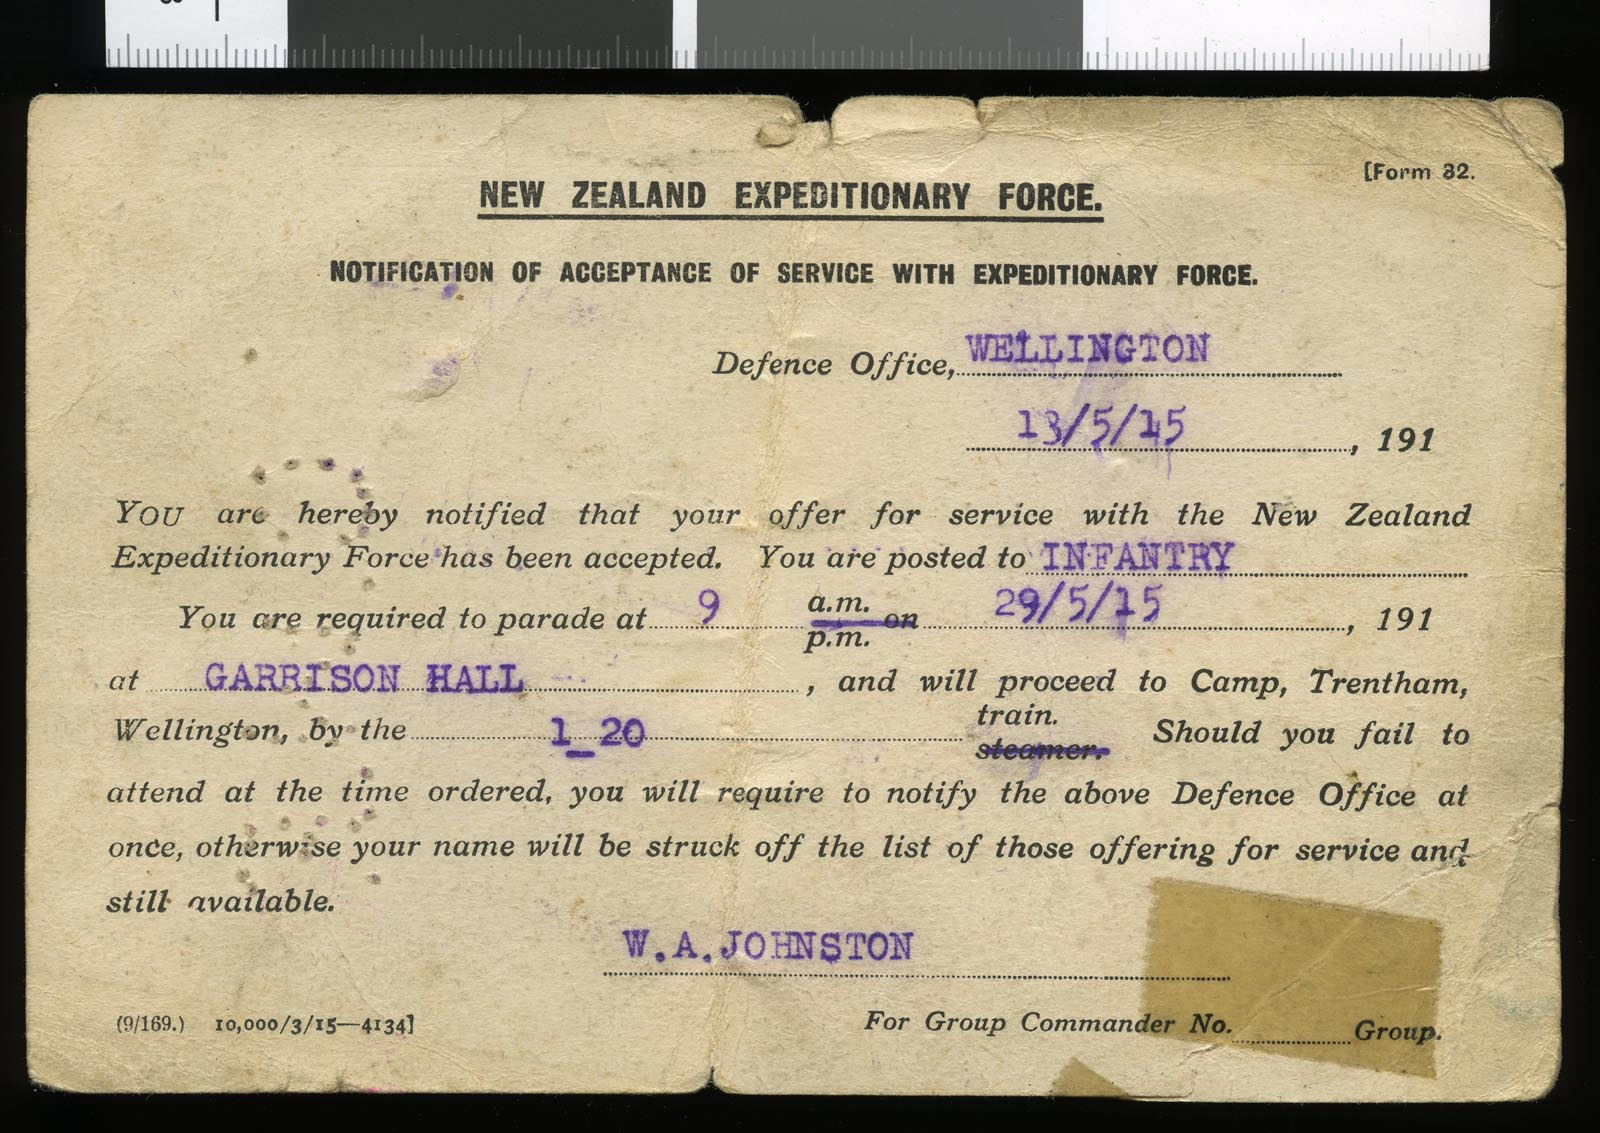 Notification of service, NZEF